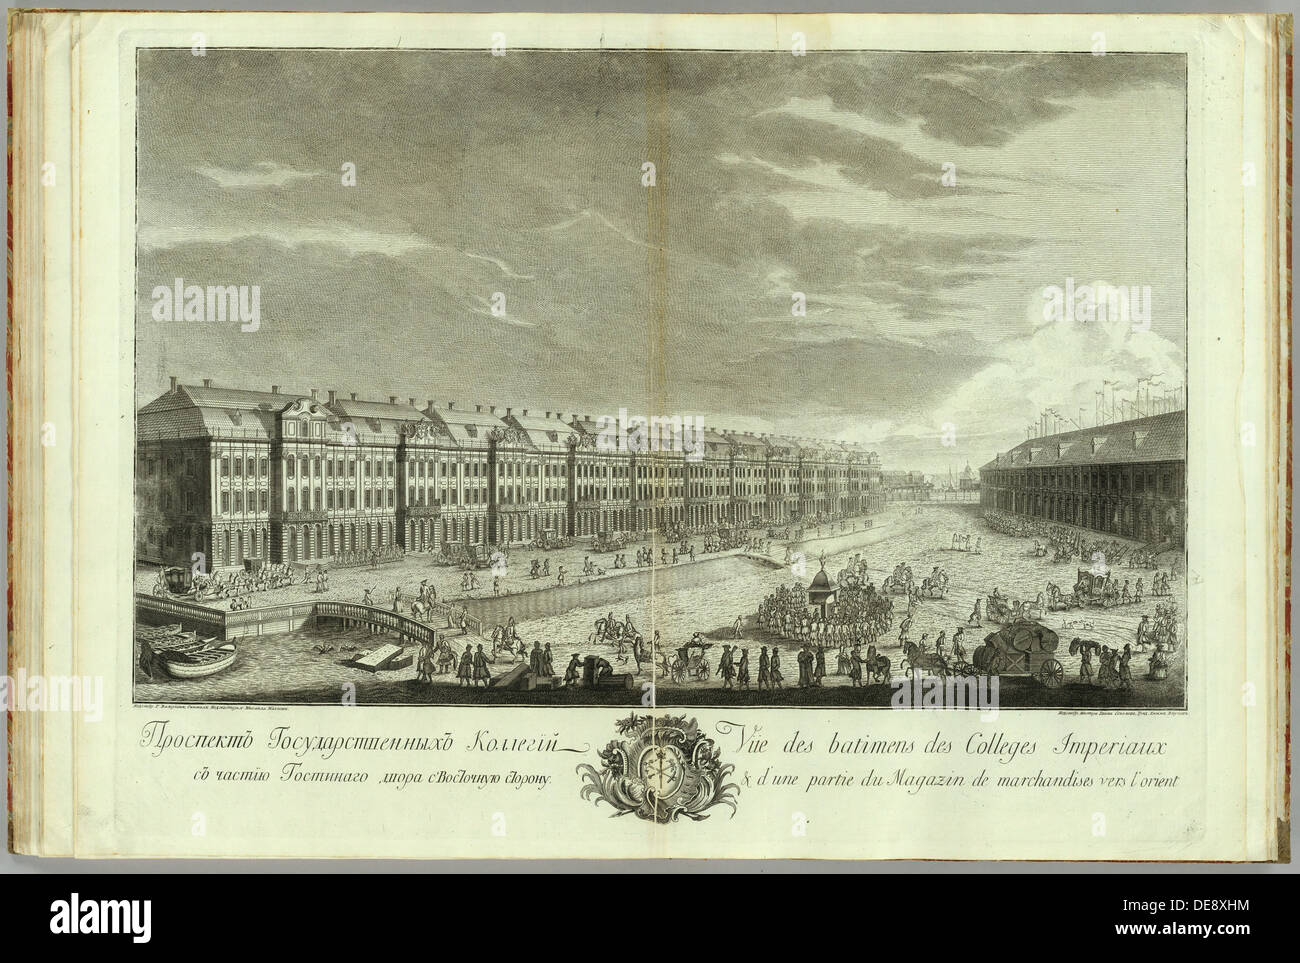 View of the Twelve Collegia building in Saint Petersburg (Book to the 50th anniversary of the founding of St. Petersburg), 1753. - Stock Image